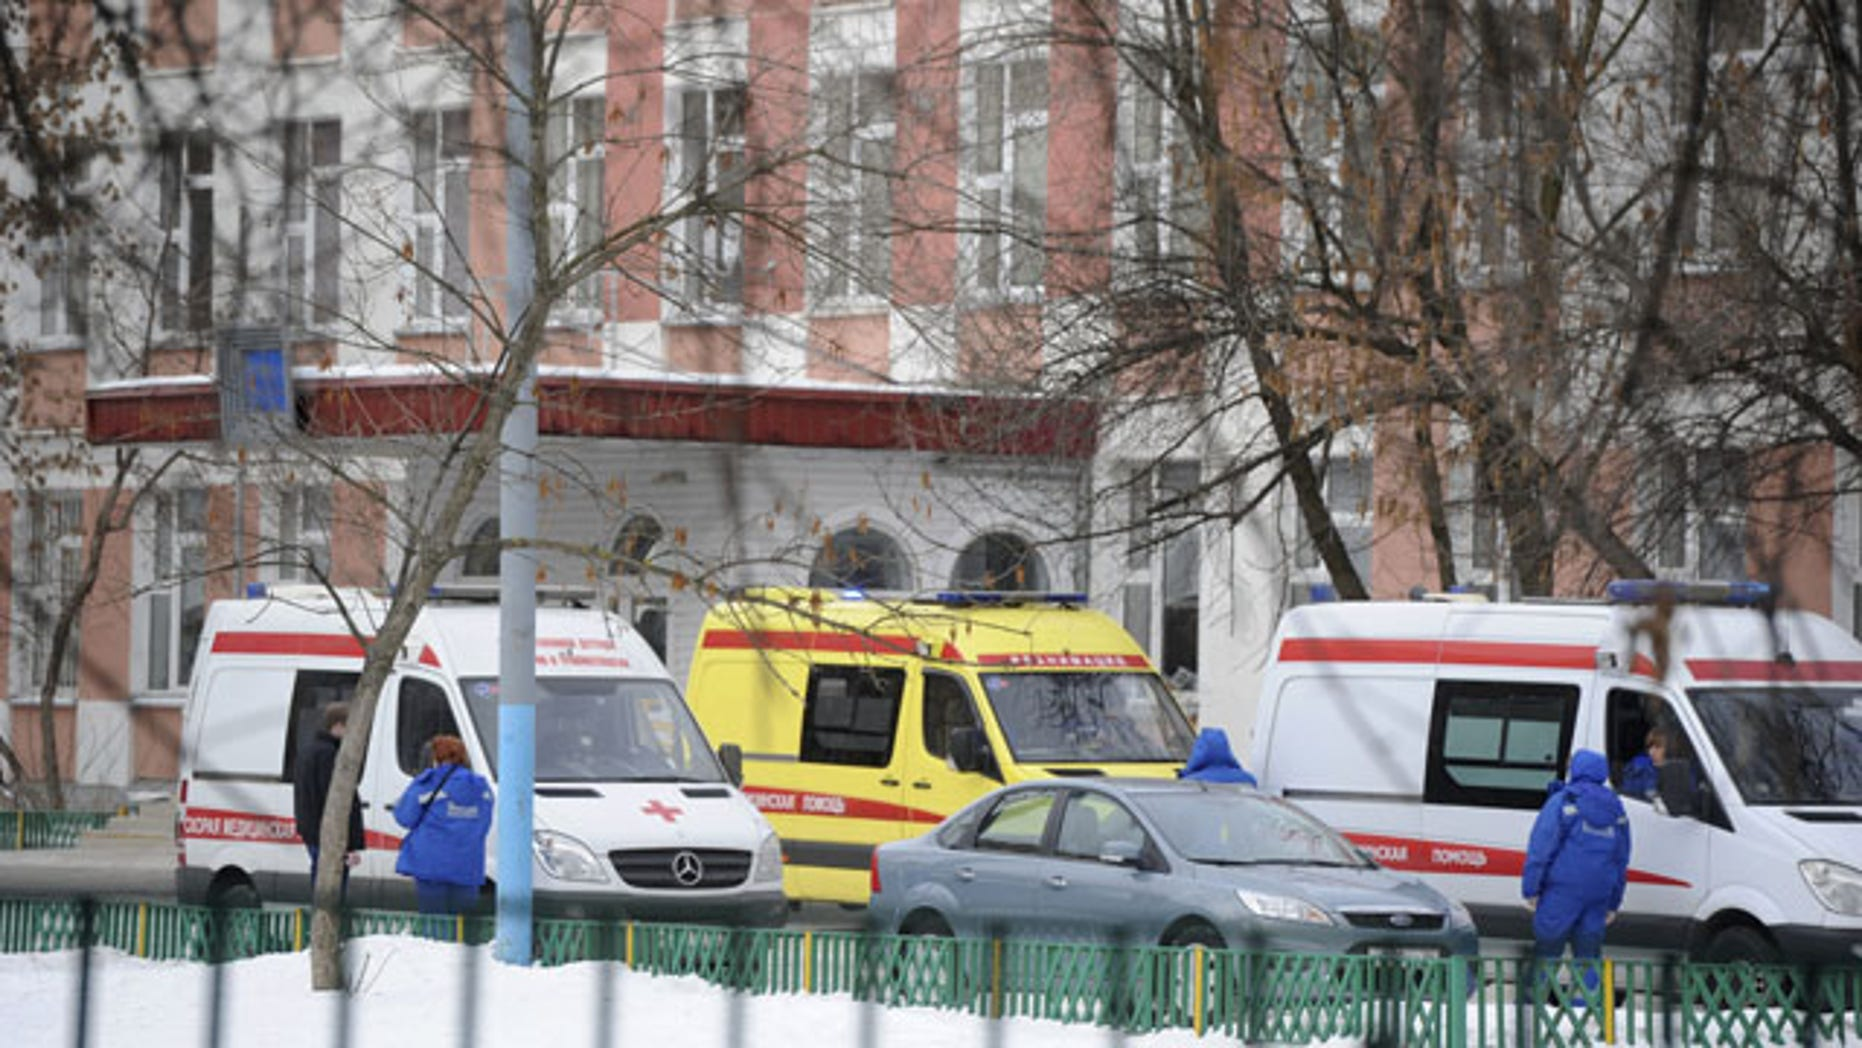 February 3, 2014: Ambulances are parked at an entrance to a school in Moscow, Russia. Moscow police said an armed teenager burst into the school and killed a security guard and a teacher before being taken into custody. (AP Photo/Anton Belitsky)